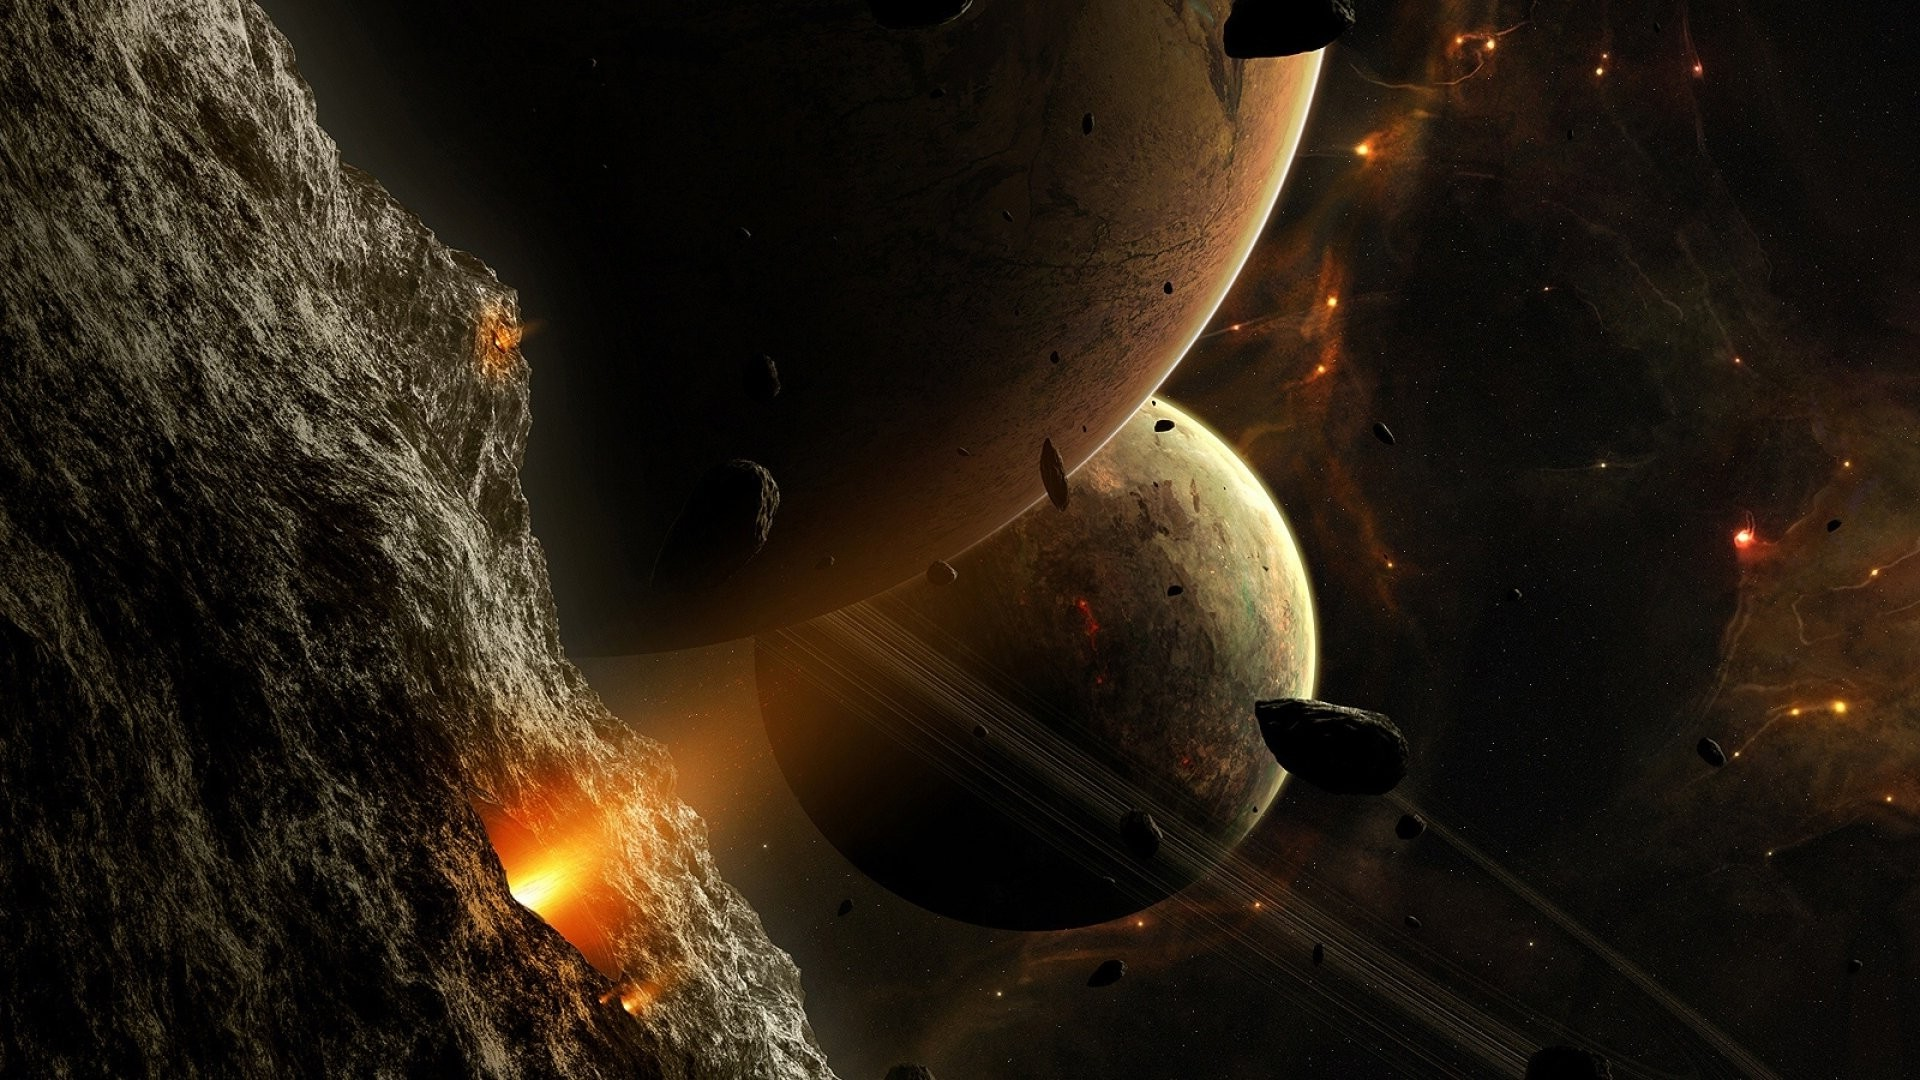 3d Asteroid Wallpaper Space Planet Stars Space Art Asteroid Wallpapers Hd